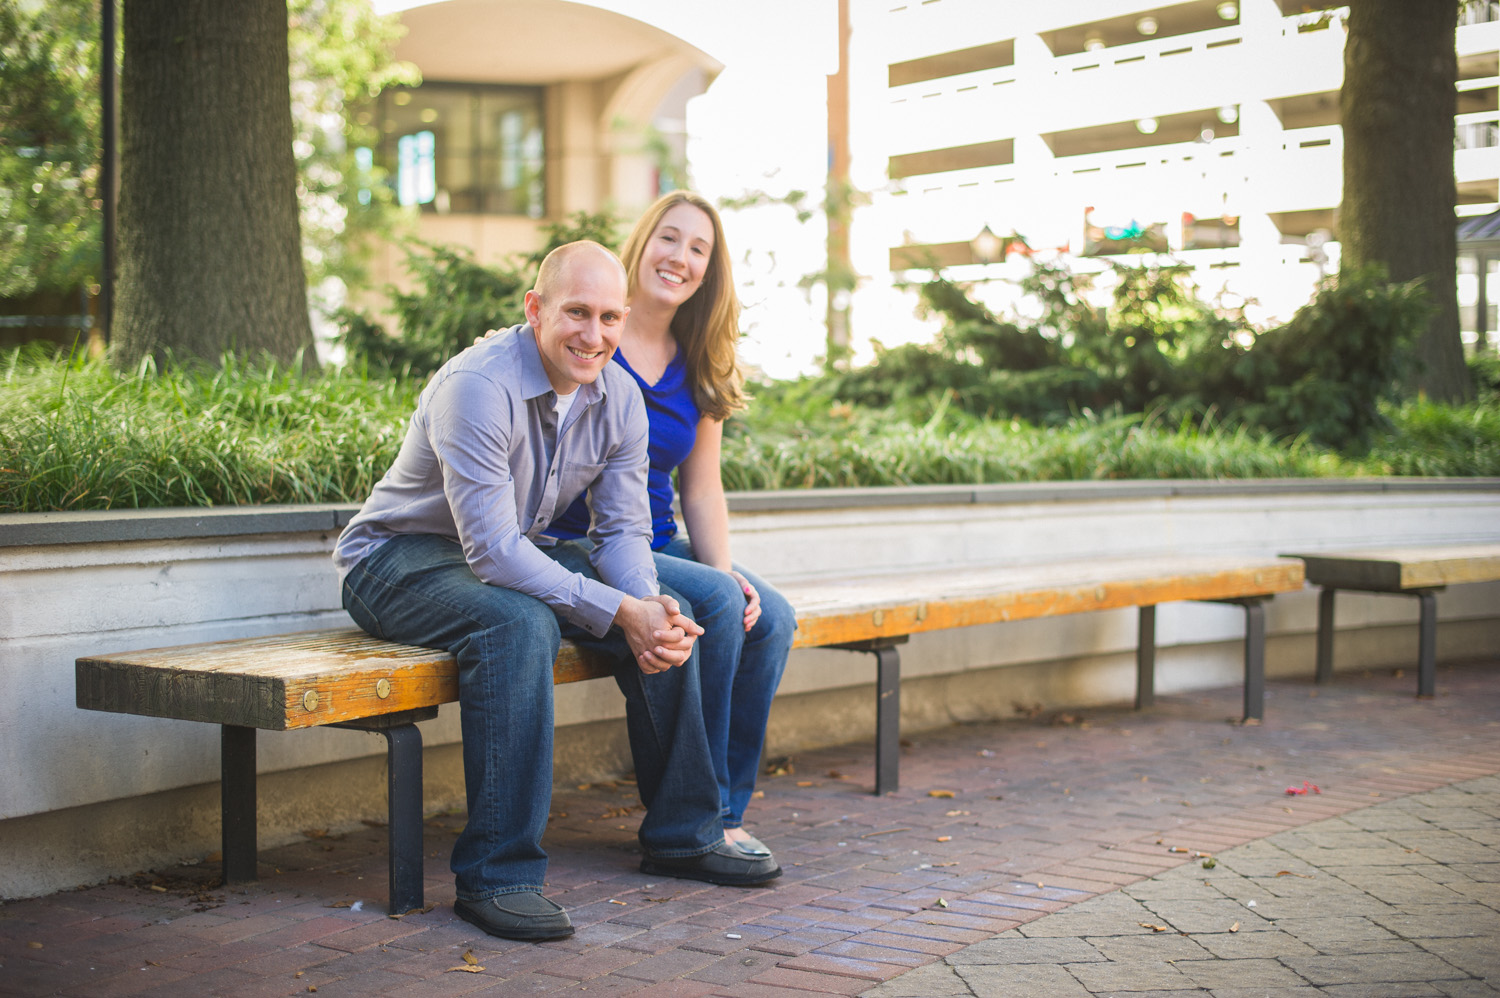 brandywine-park-city-of-wilmington-engagement-session-13.jpg